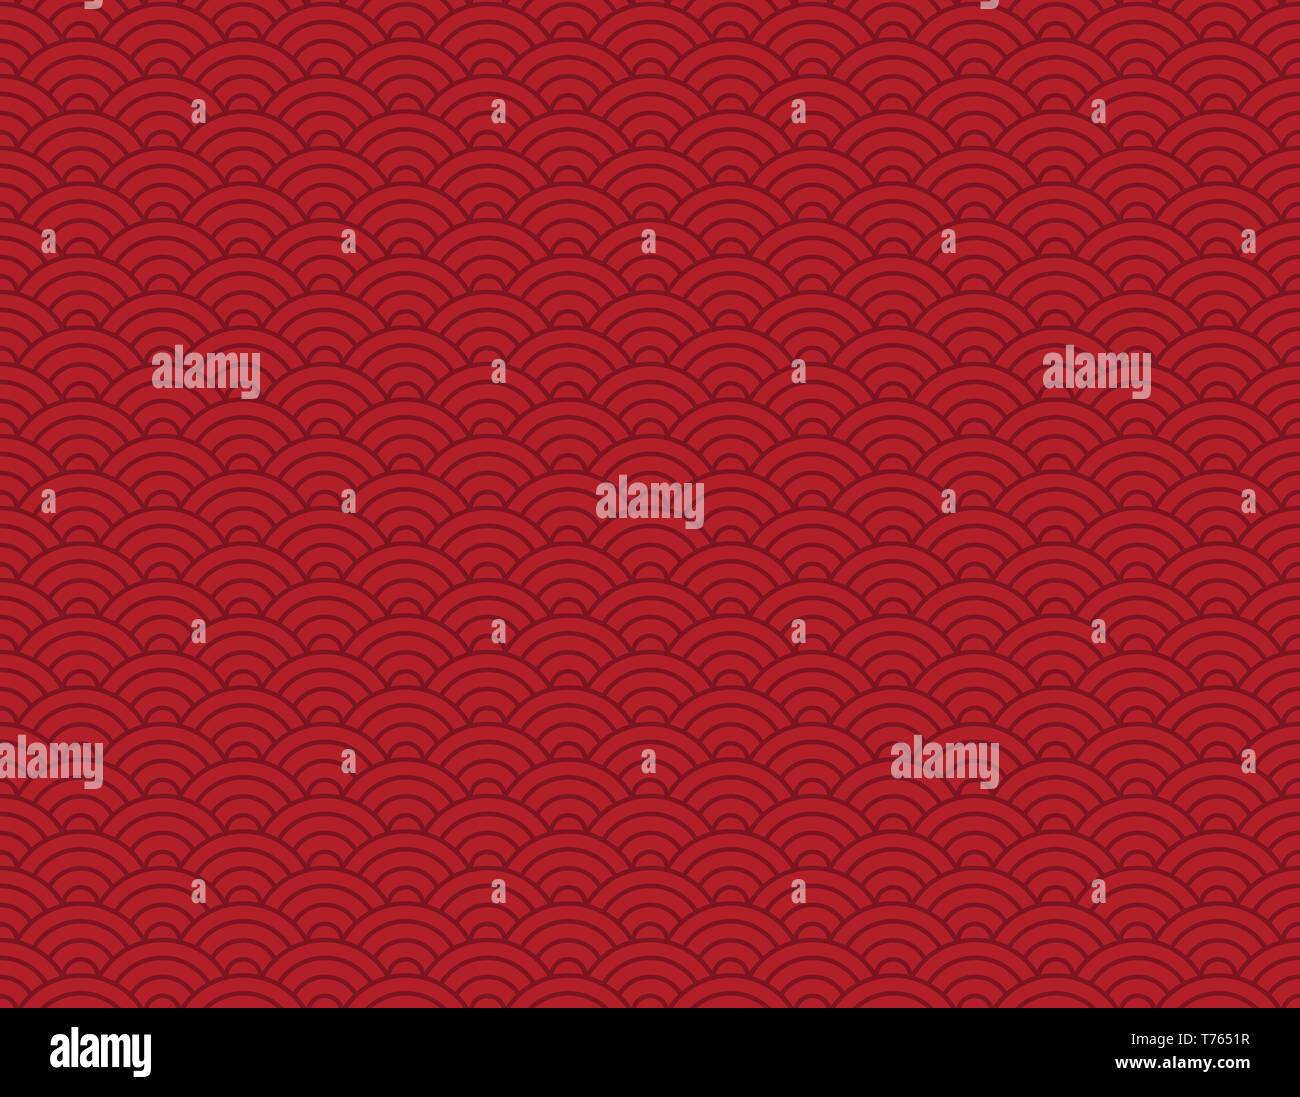 Chinese vector background with waves, seamless pattern, chinese culture - Stock Vector